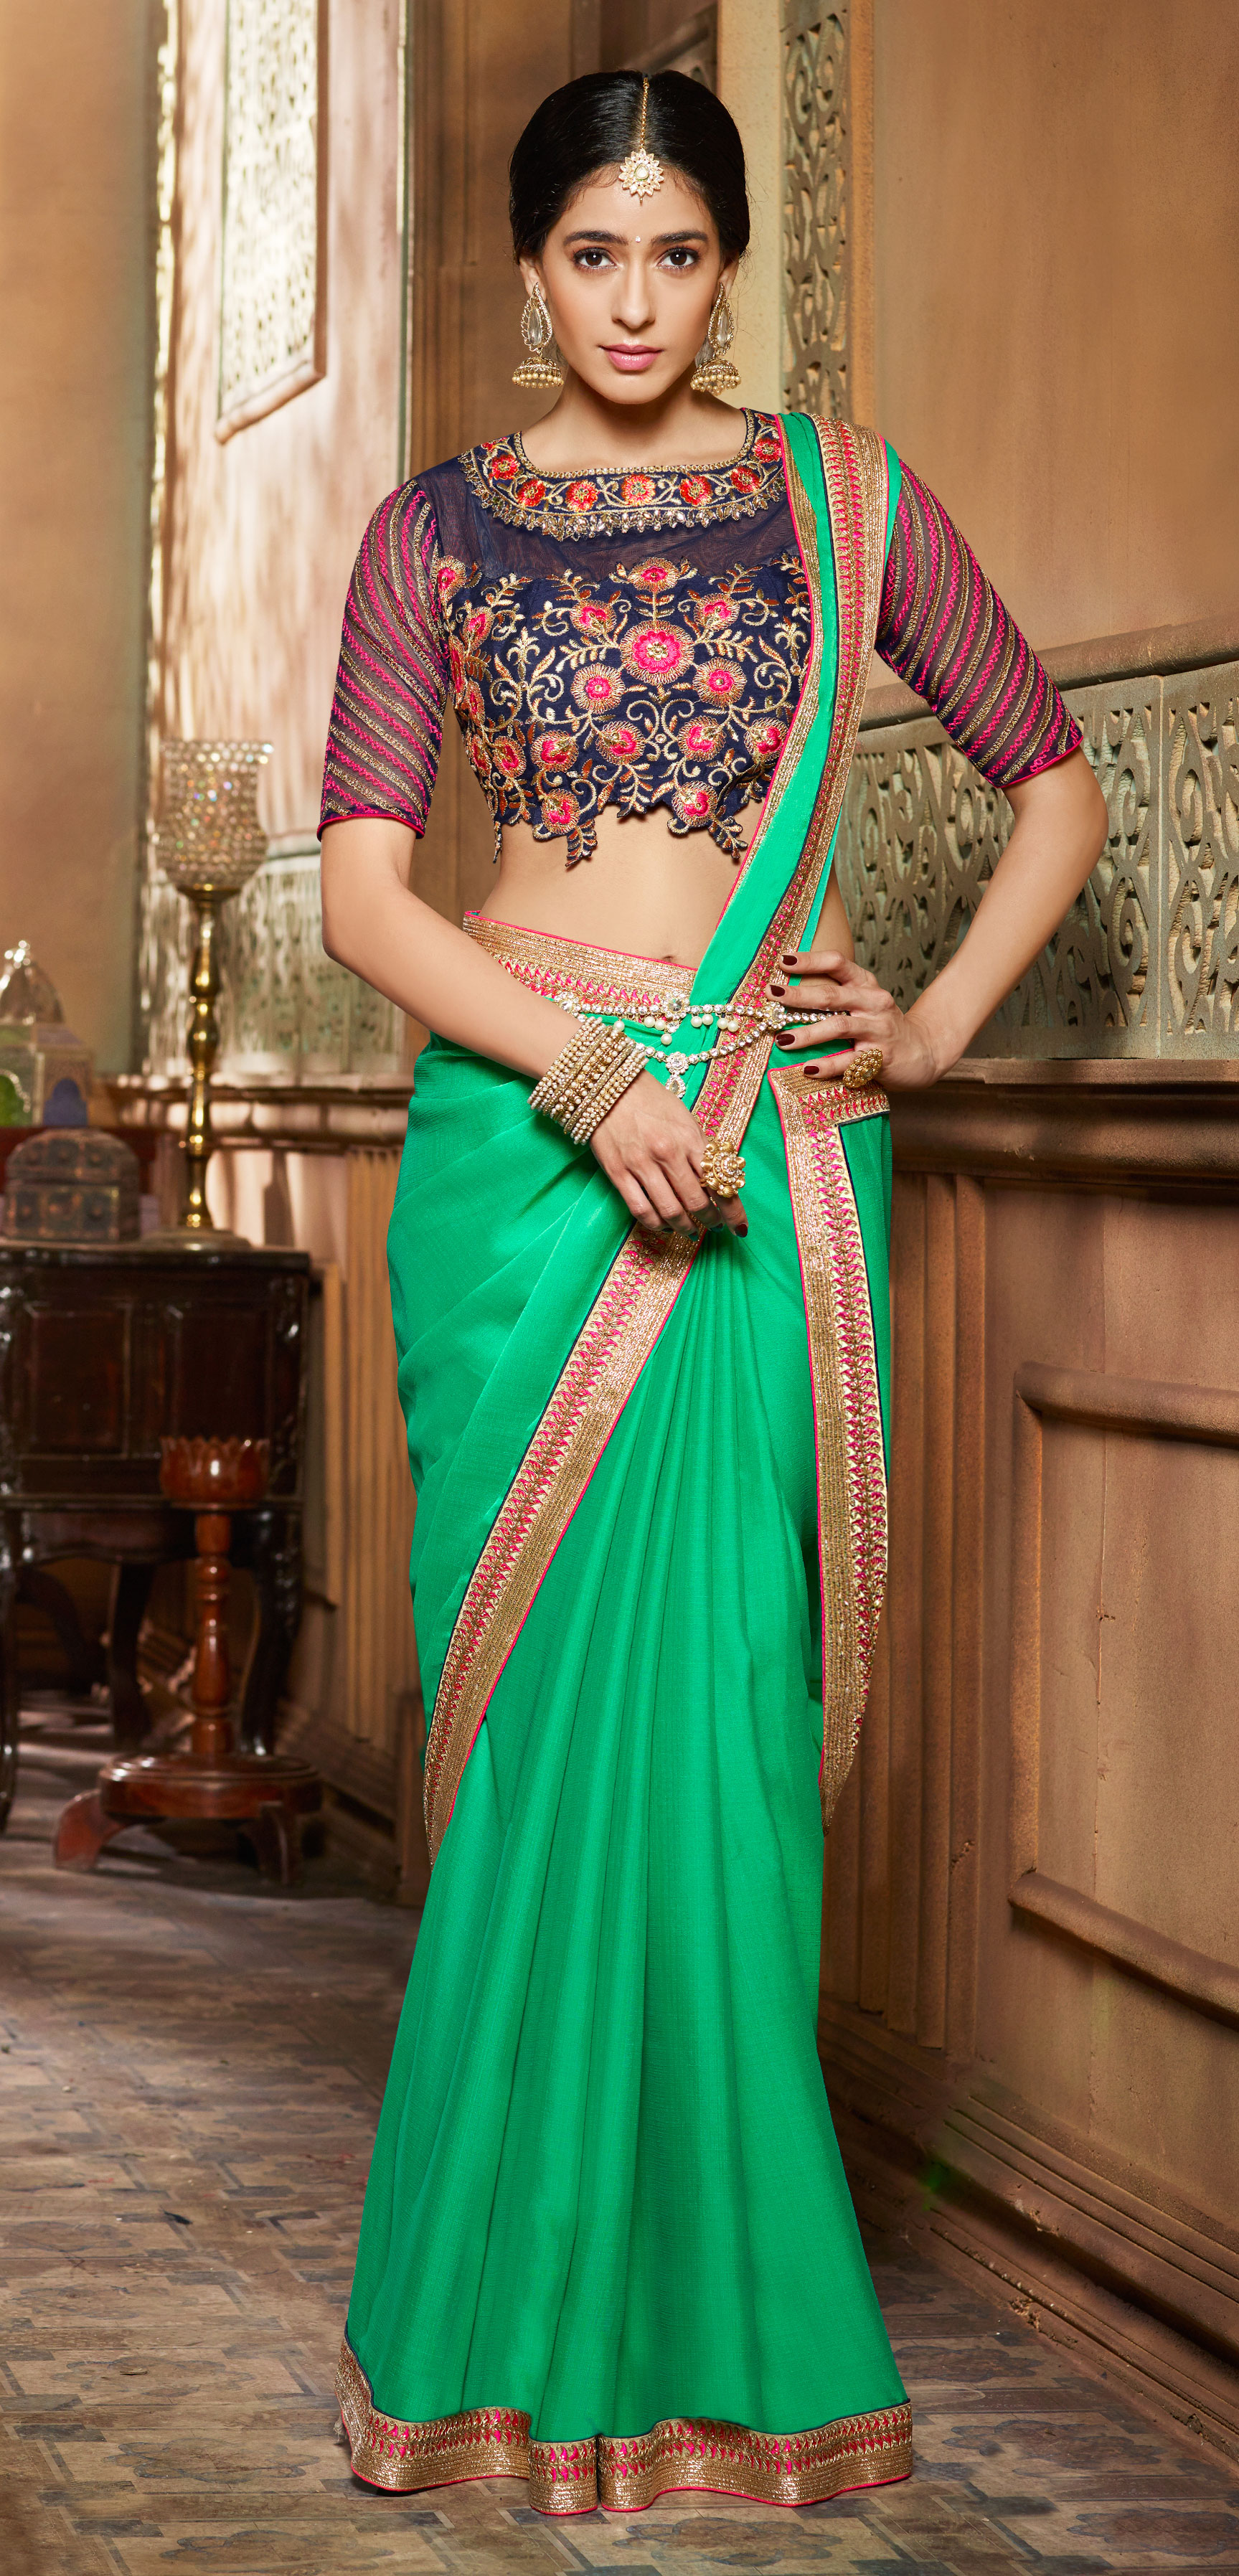 ralsaree Real Saree Women's Green Kabali Two Tone Self Pattern Embroidered Saree With Blouse